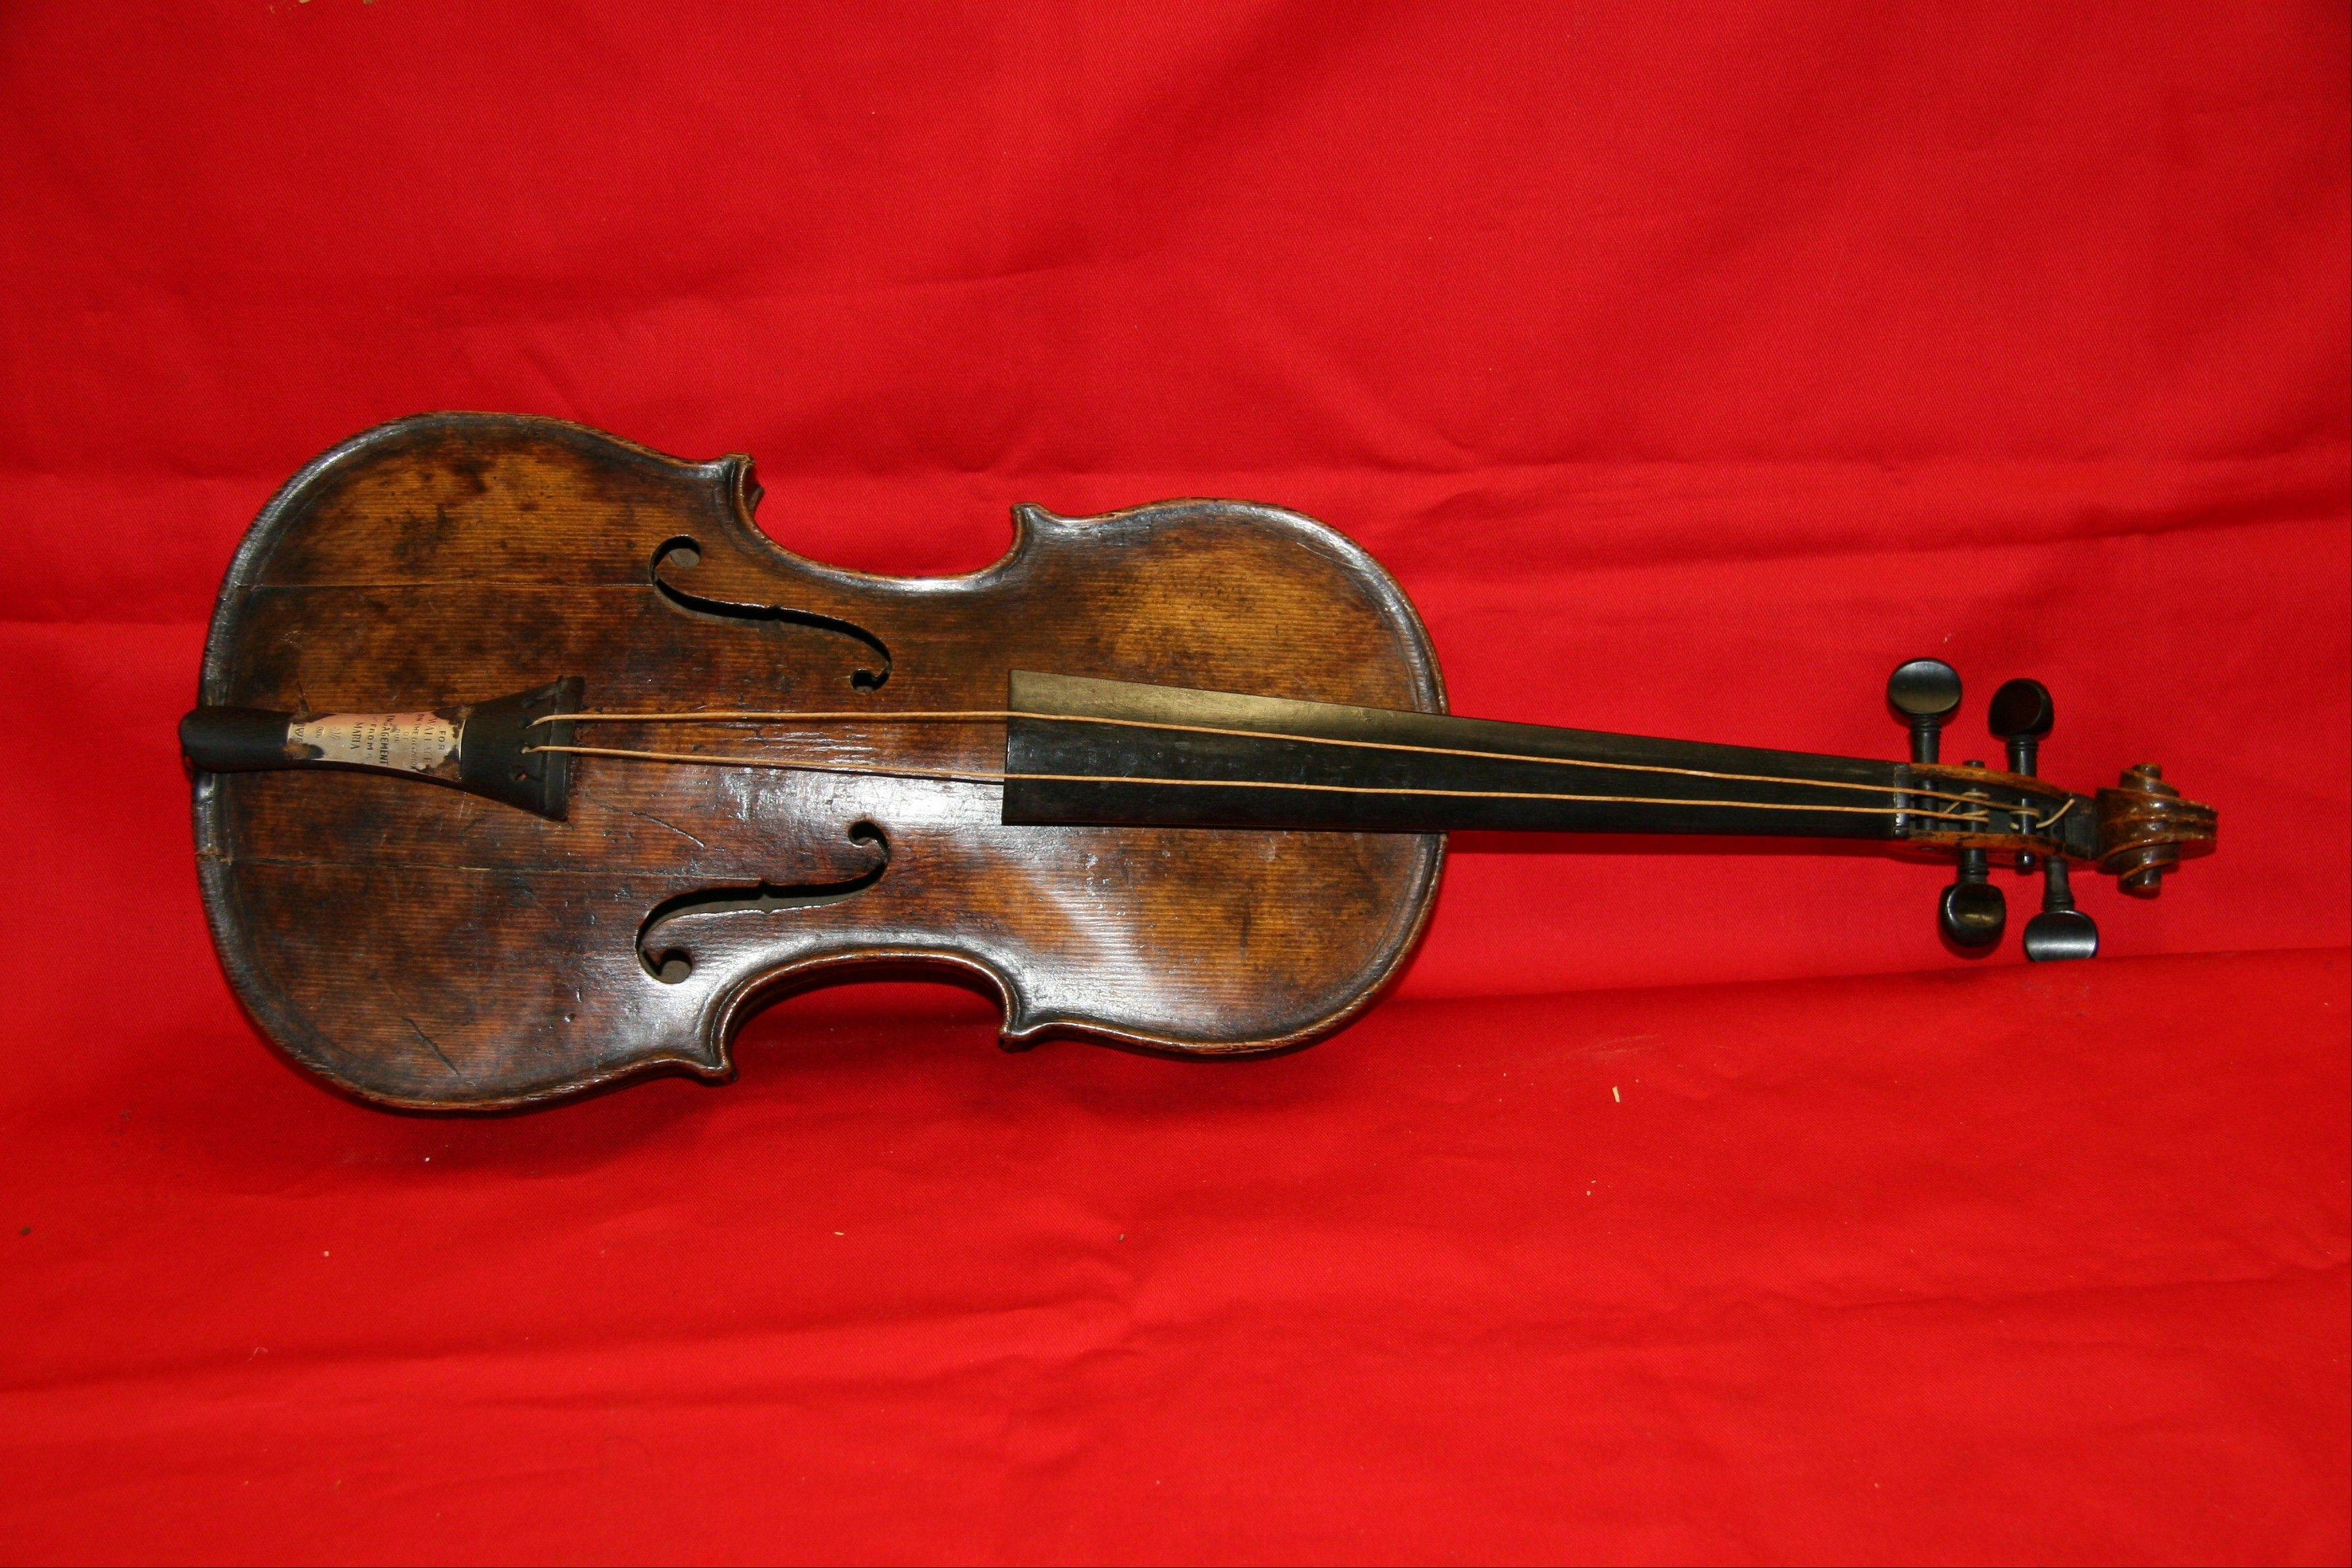 A violin believed to be the one played by Titanic bandmaster Wallace Hartley goes on auction.